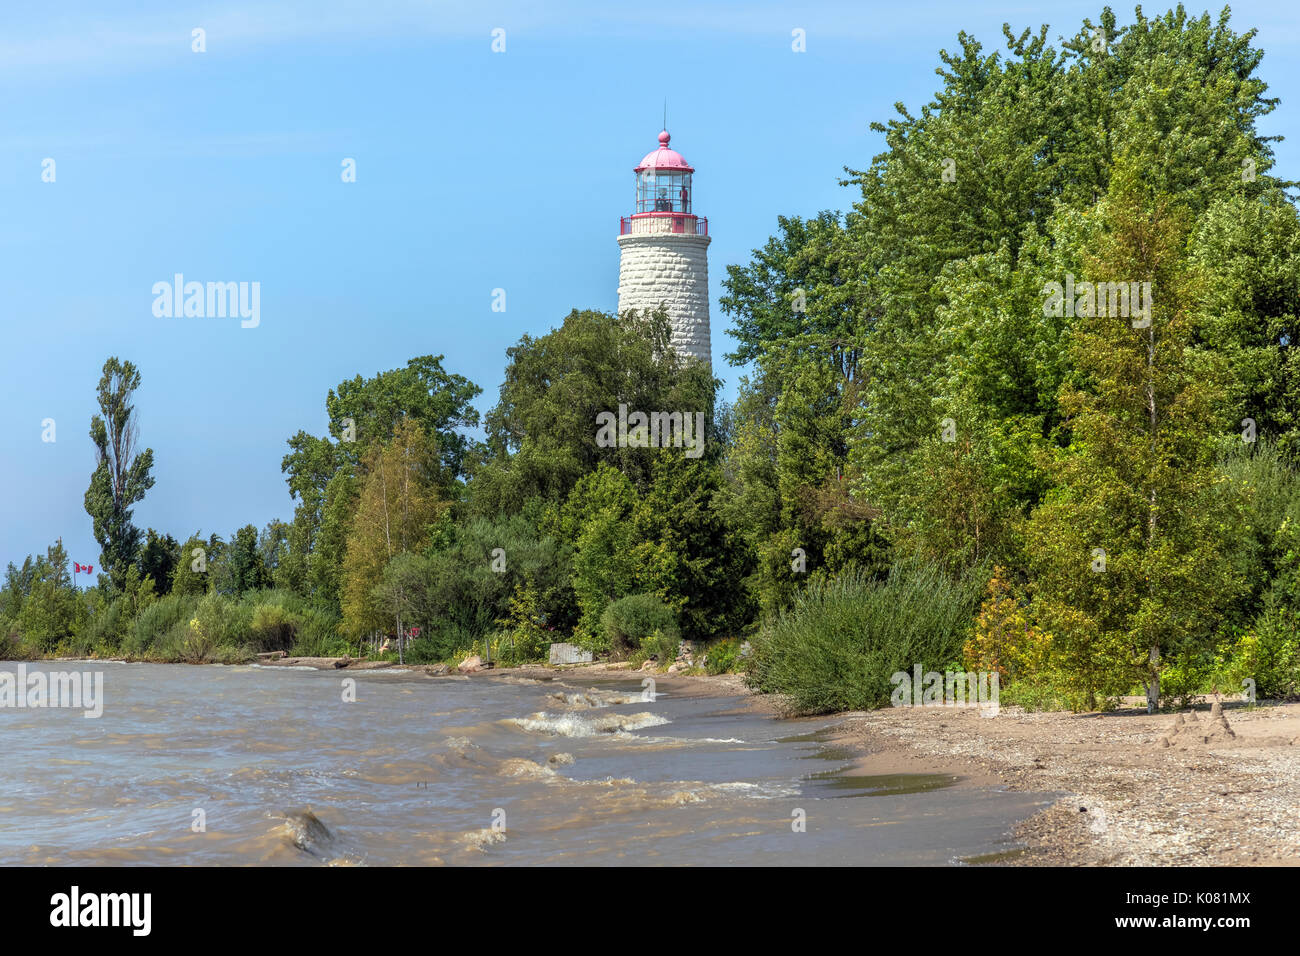 Point Clark, Bruce County, Ontario, Canada - Stock Image